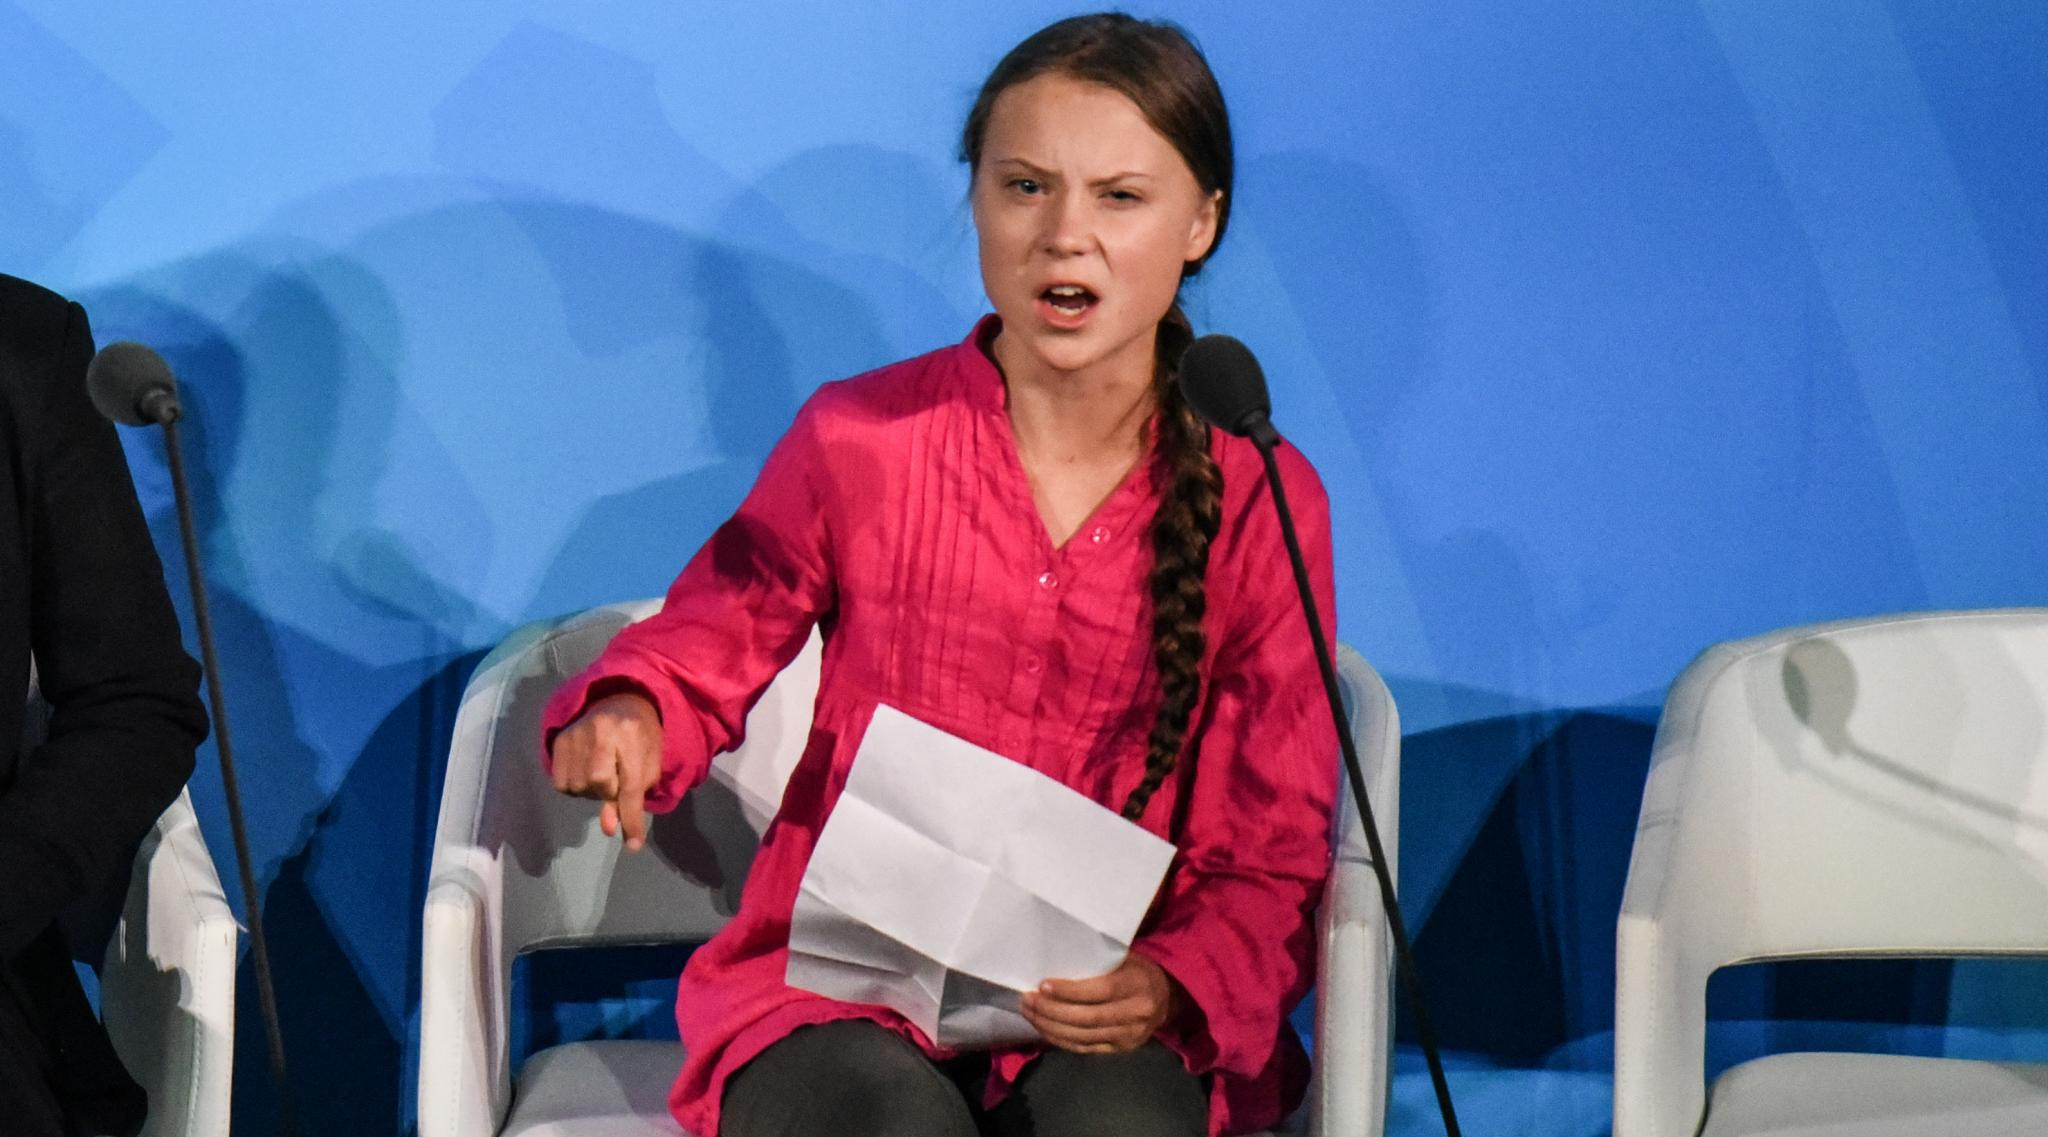 UN Climate Change Summit 2019: 'How Dare You?' Greta Thunberg Asks World Leaders in New York